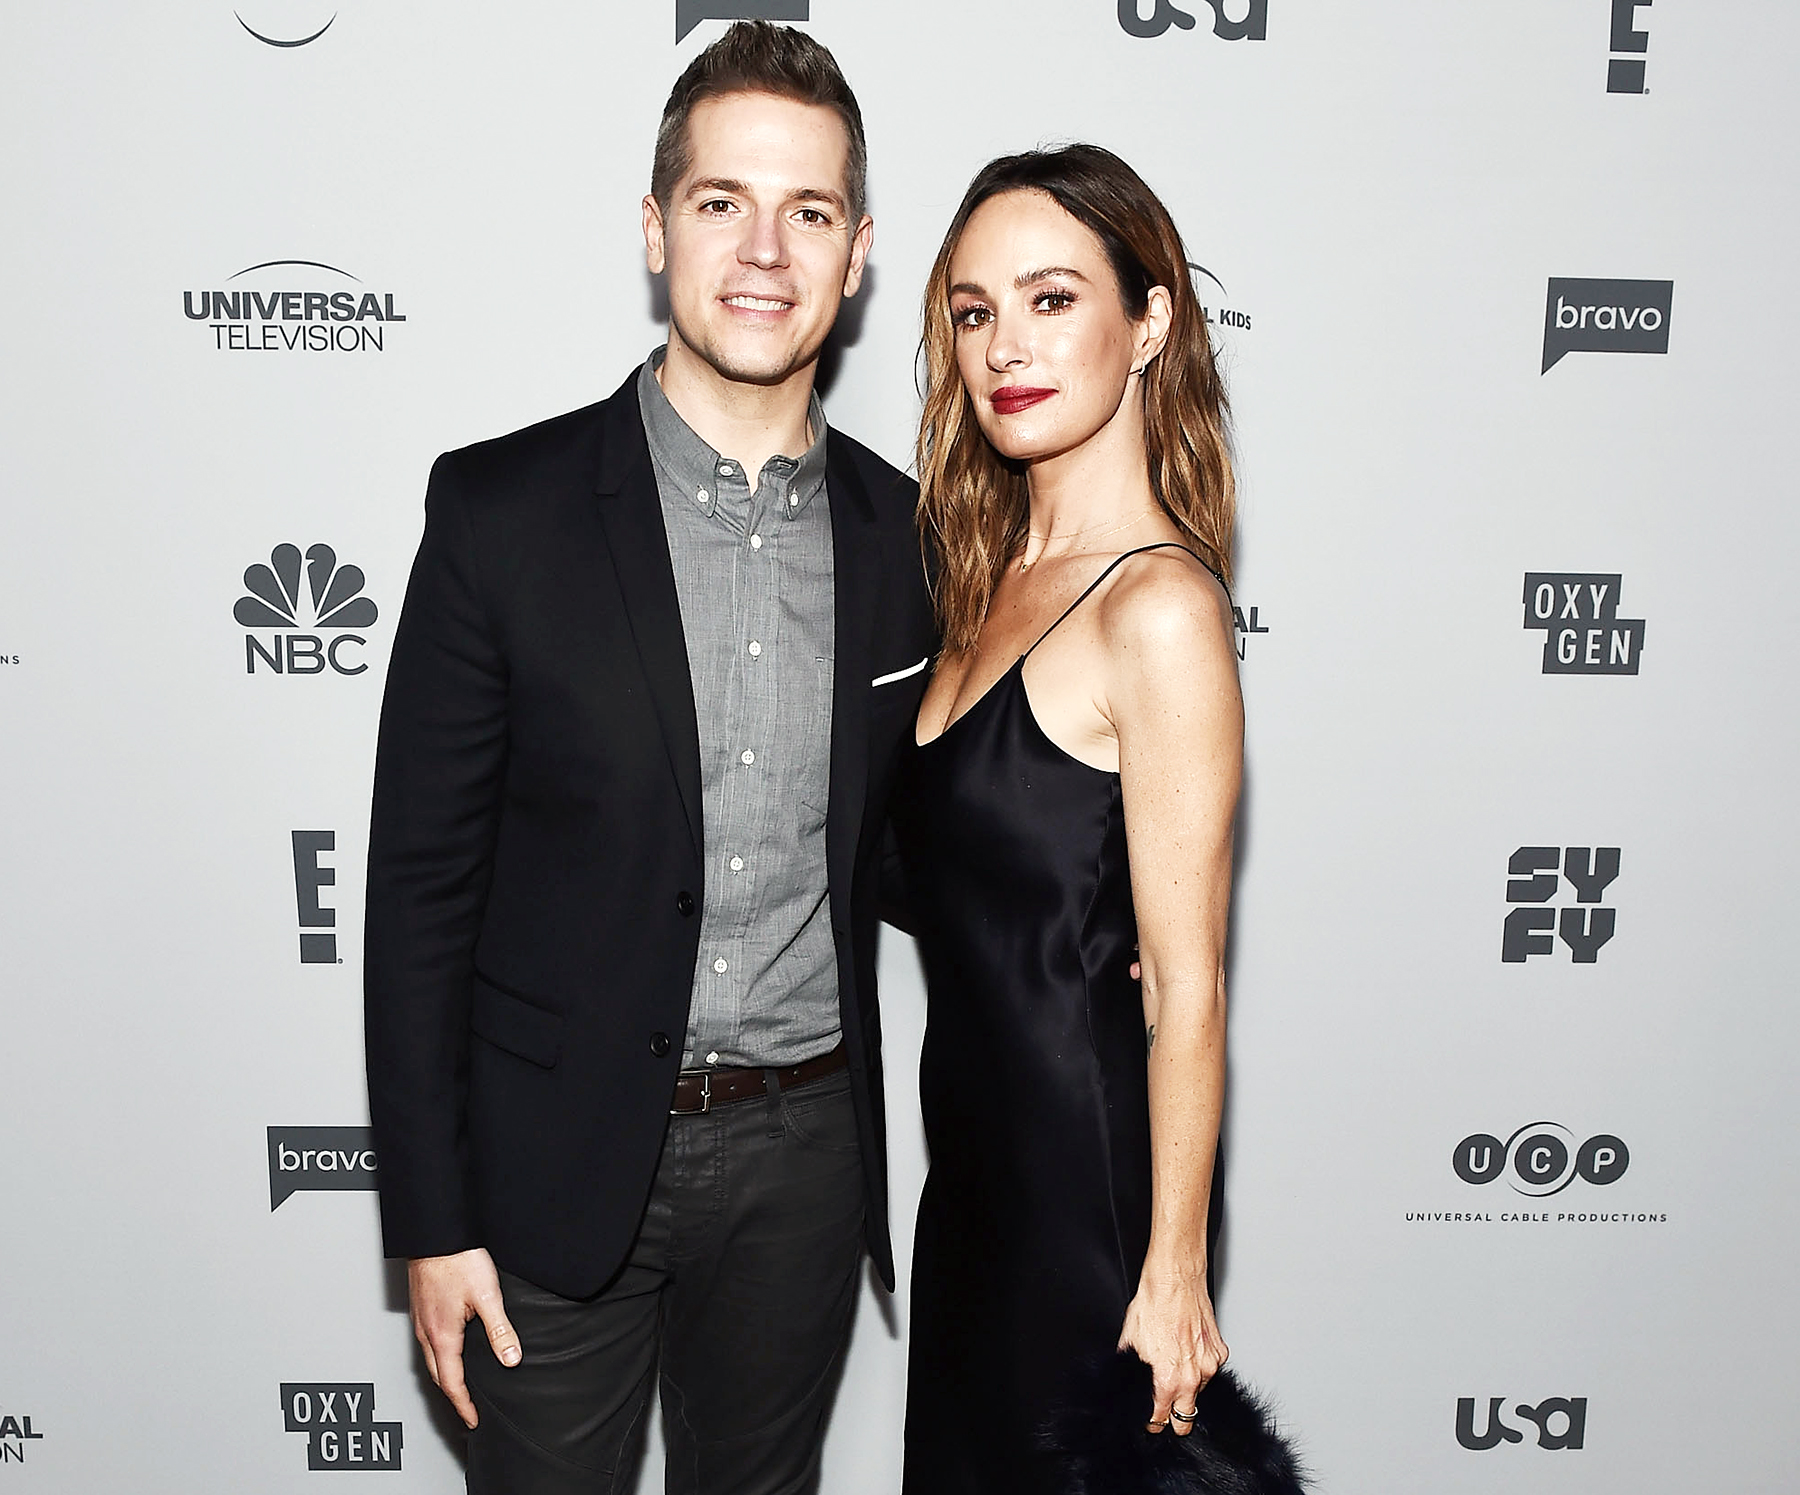 Catt Sadler leaves E! over pay dispute